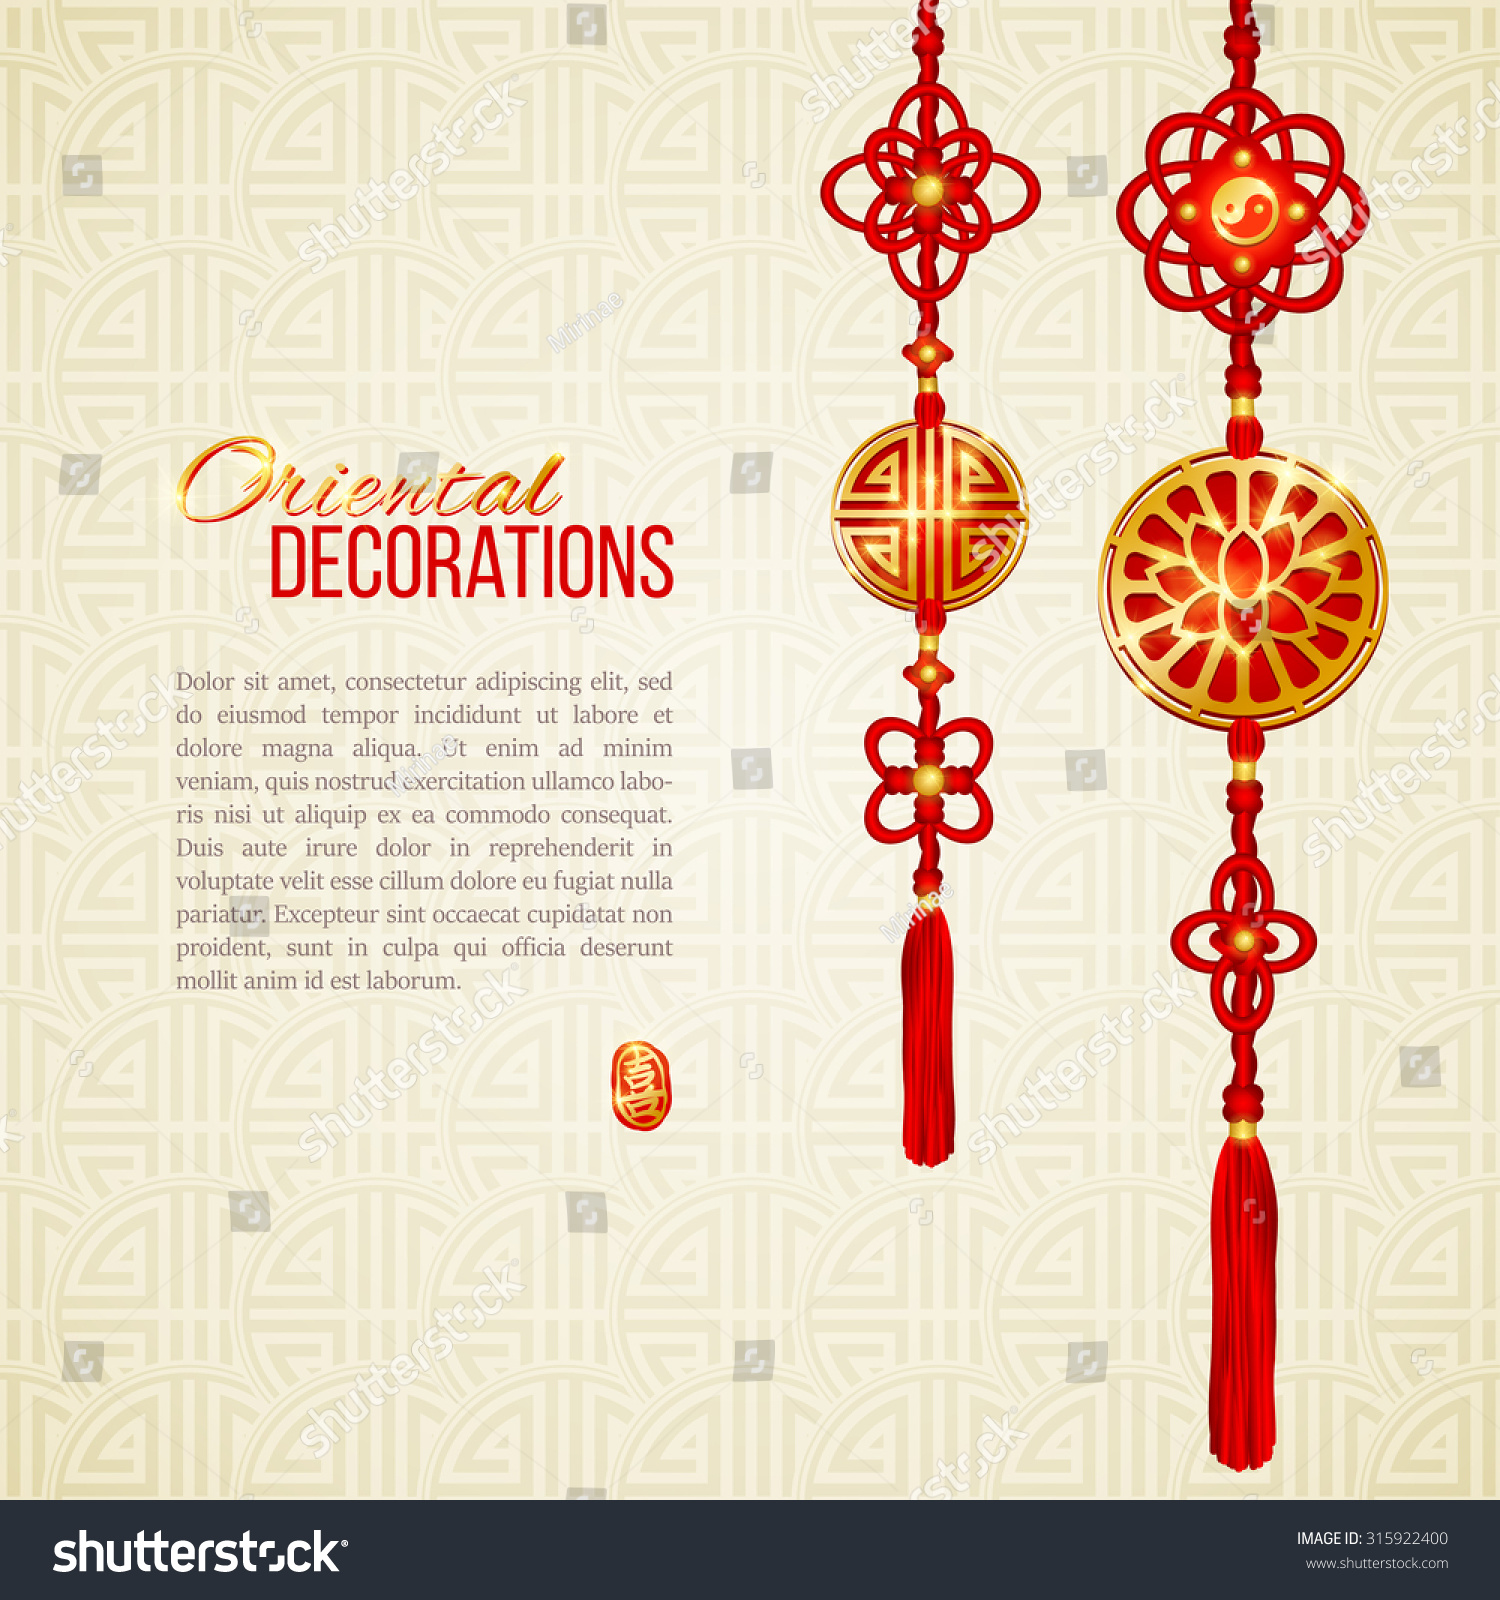 Royalty free oriental asian red and golden tassel 315922400 lotus image yin yang symbol and knot elements stamp with chinese hieroglyph for joy perfect decor for asian new year or harvest festival vector biocorpaavc Images